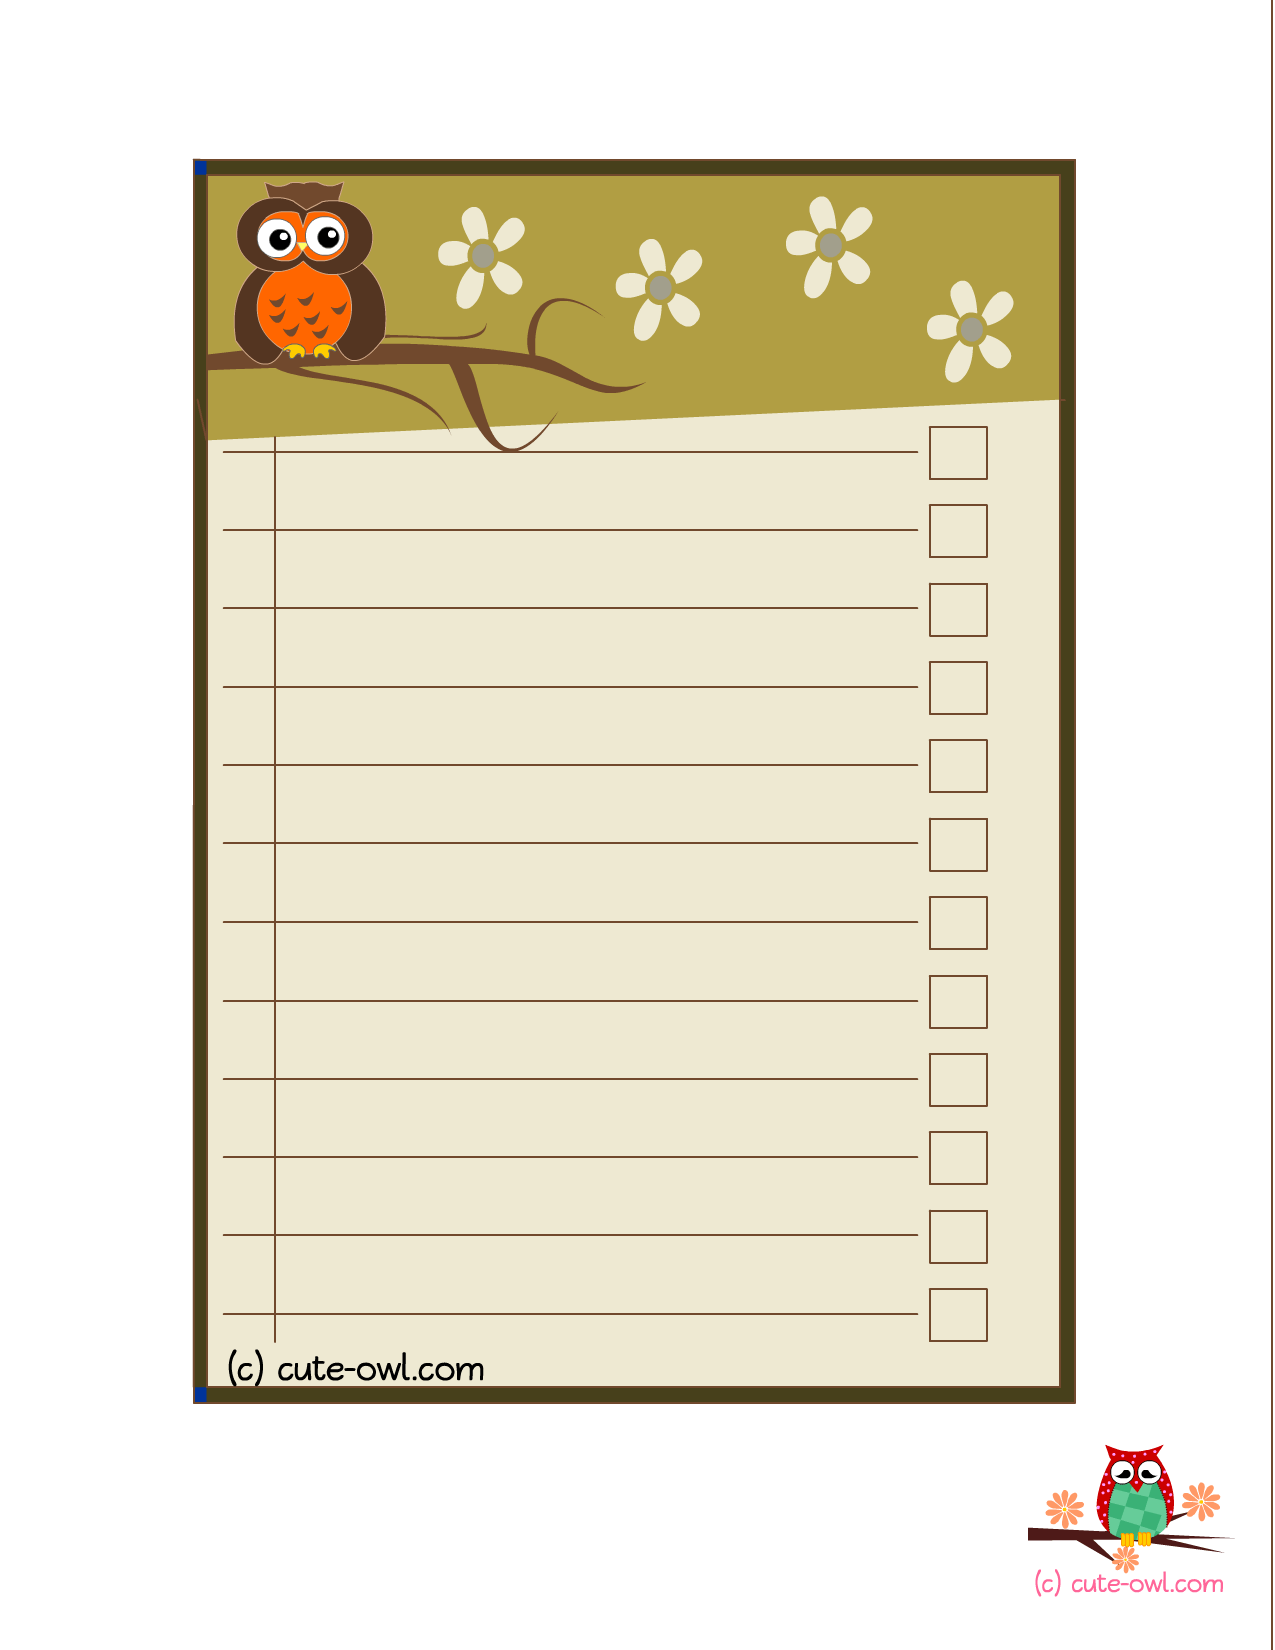 Free Blank Checklist Cliparts Download Free Clip Art Free Clip Art On Clipart Library